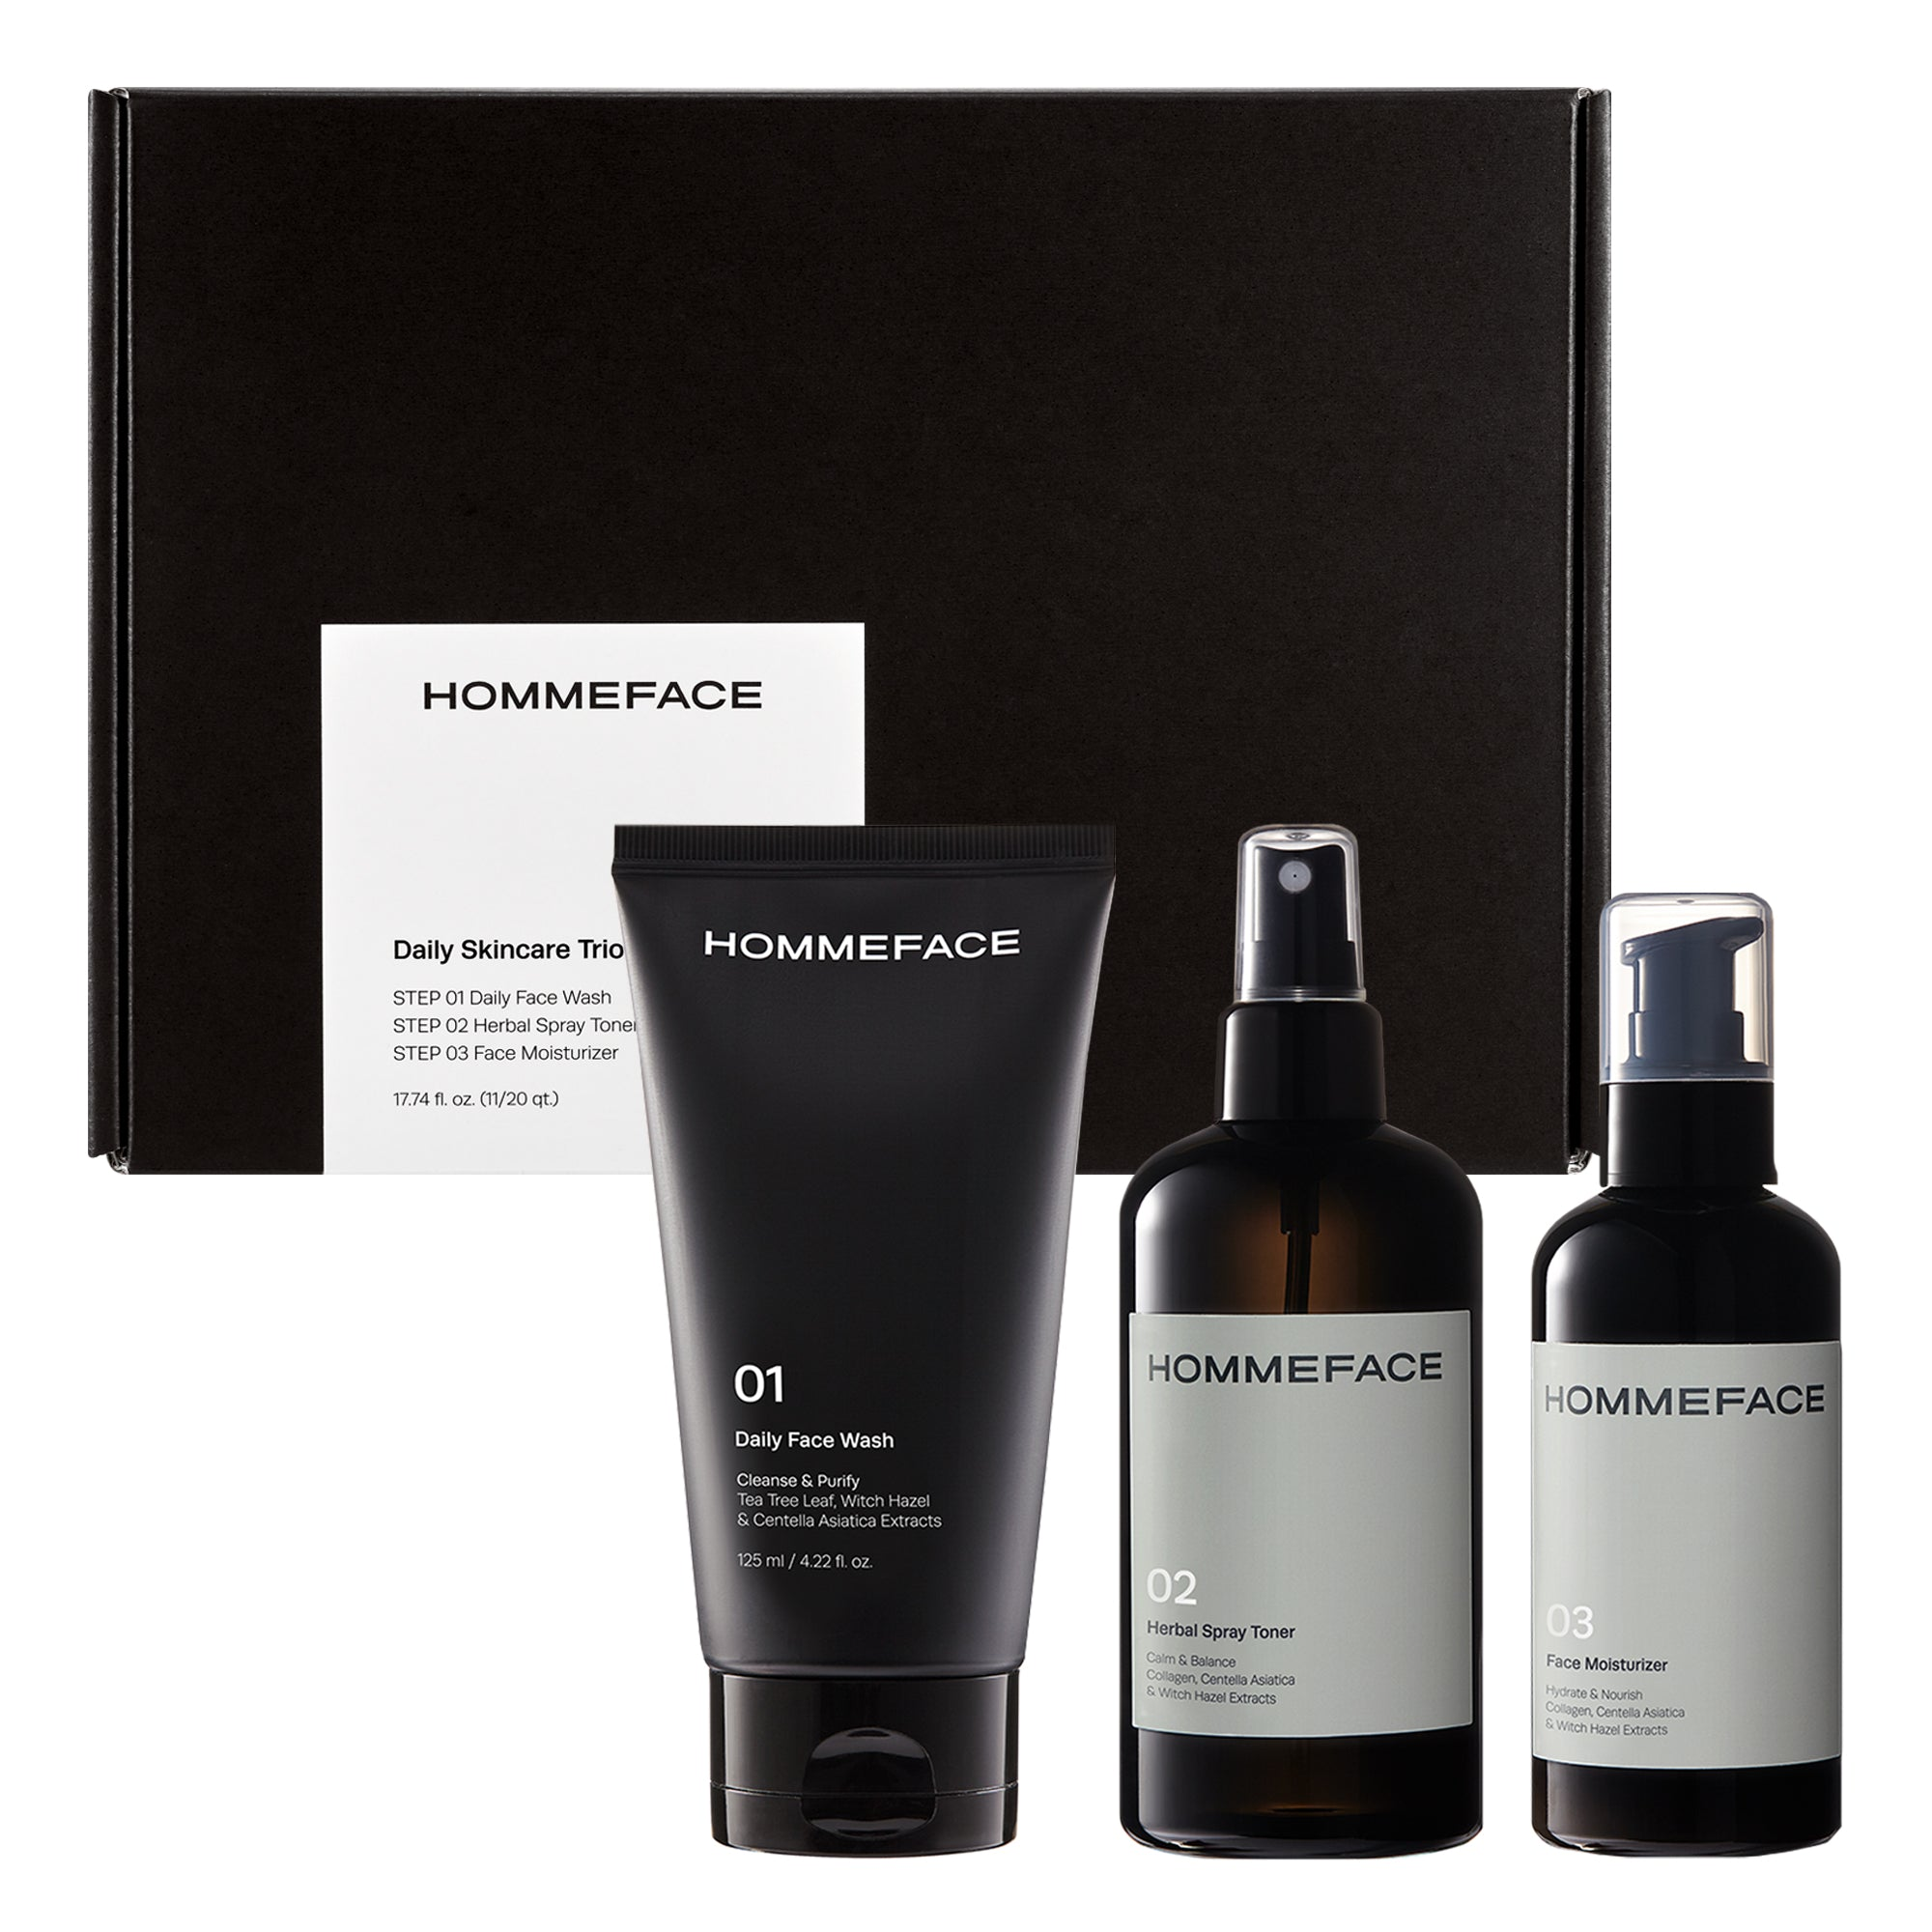 Daily Skincare Trio Set